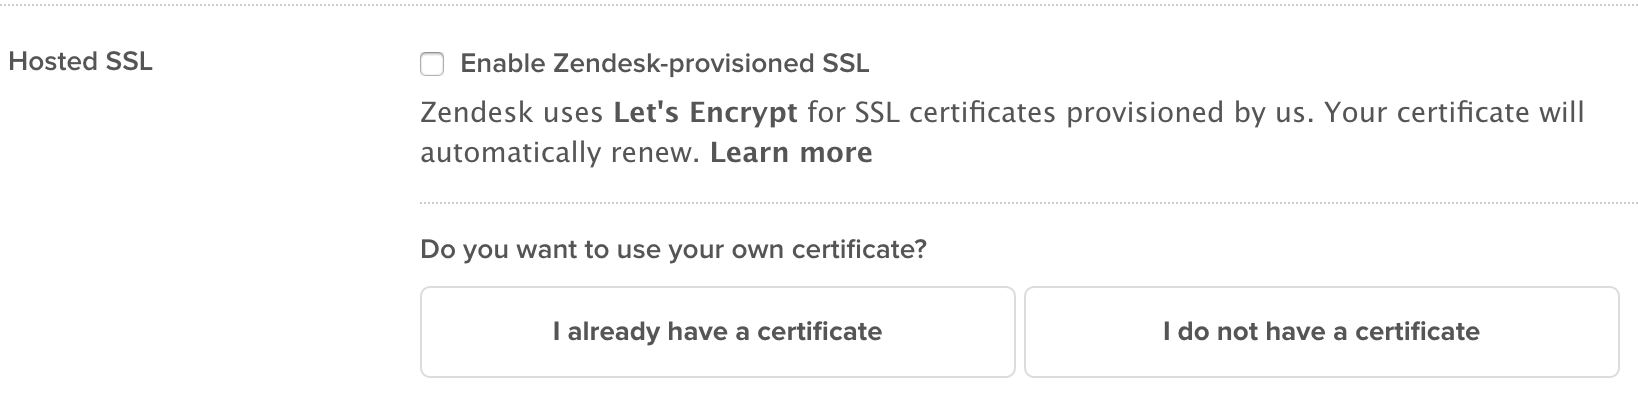 Zendesk SSL direct provisioning